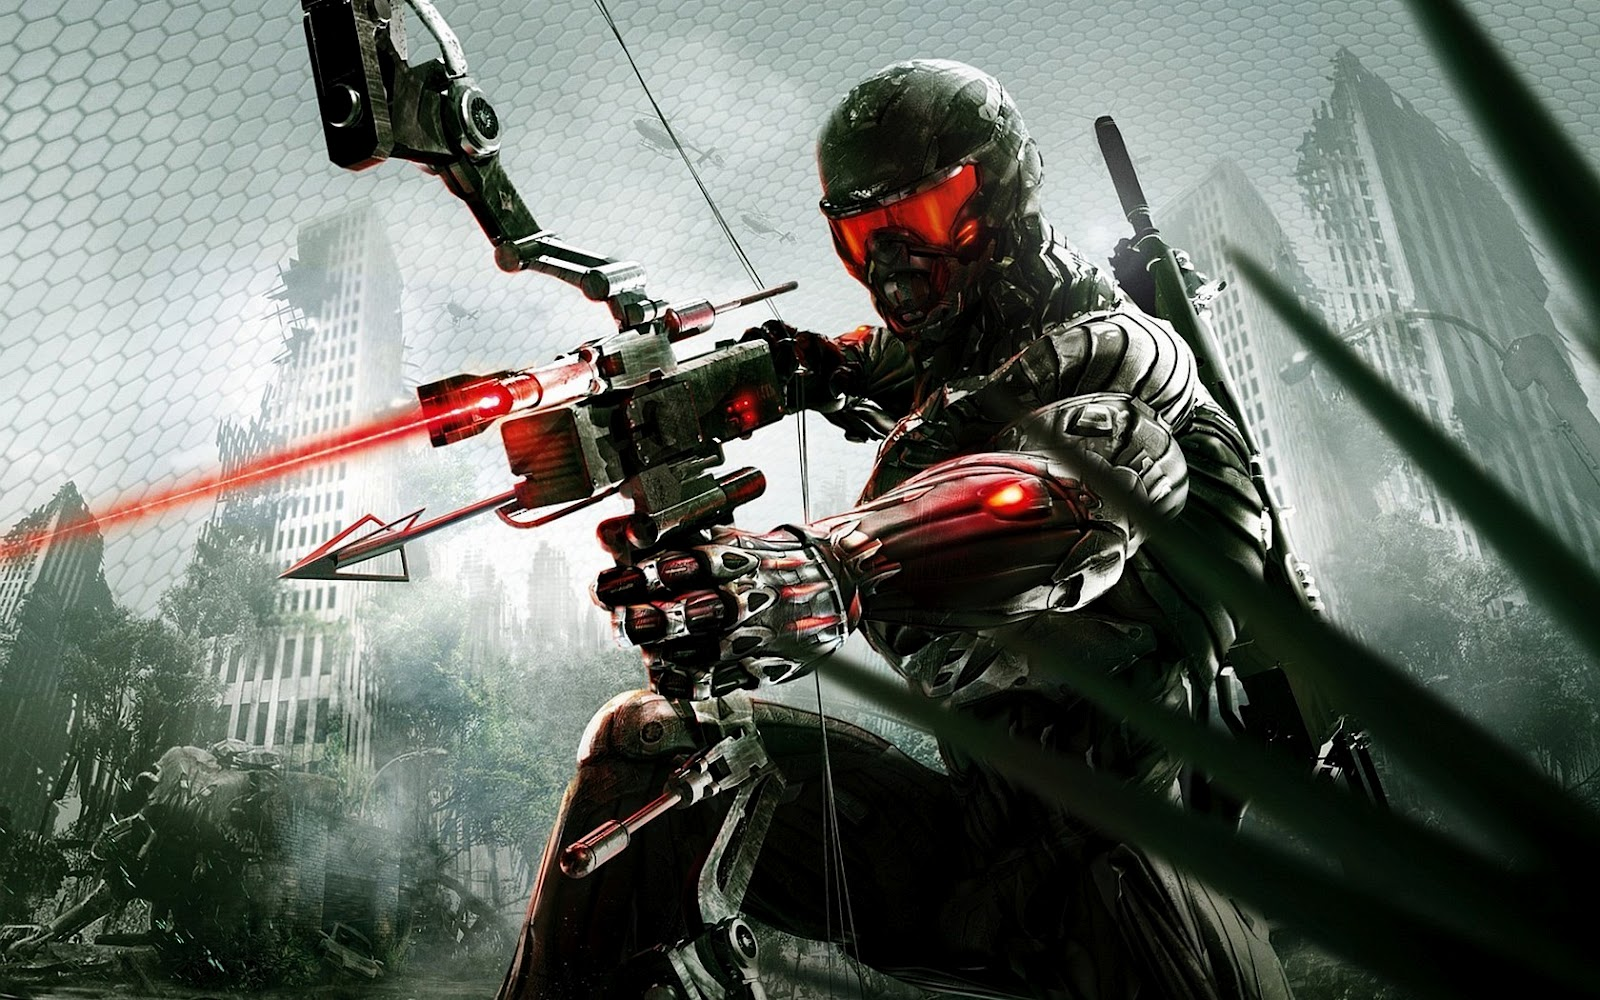 Central Wallpaper: Crysis 3 New Game HD Wallpapers and Dvd Cover